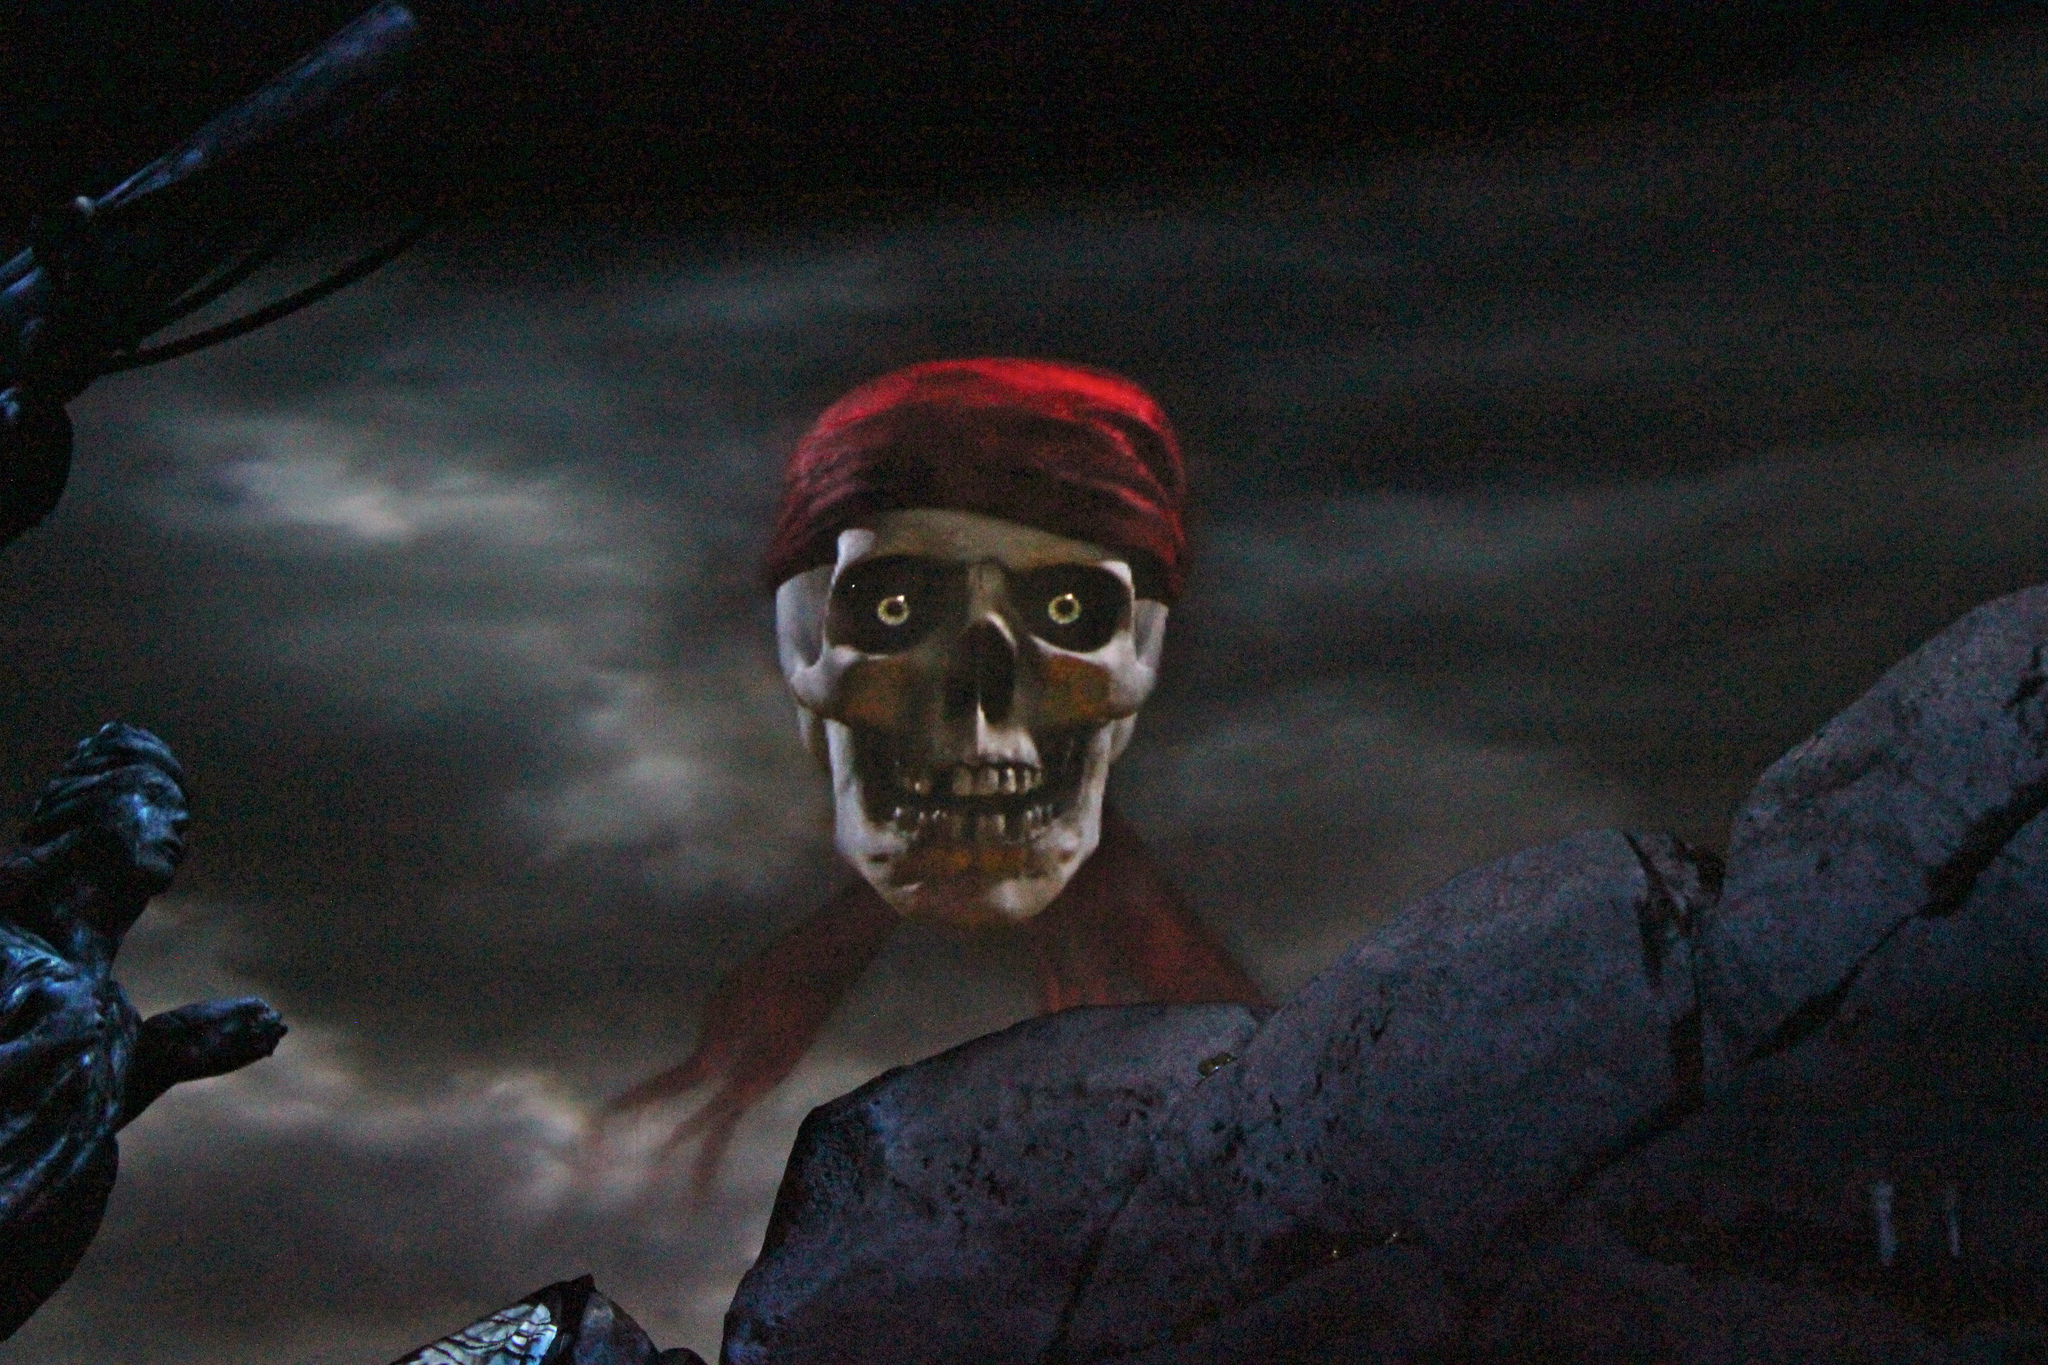 Pirates Of The Caribbean clipart pirate skeleton #12